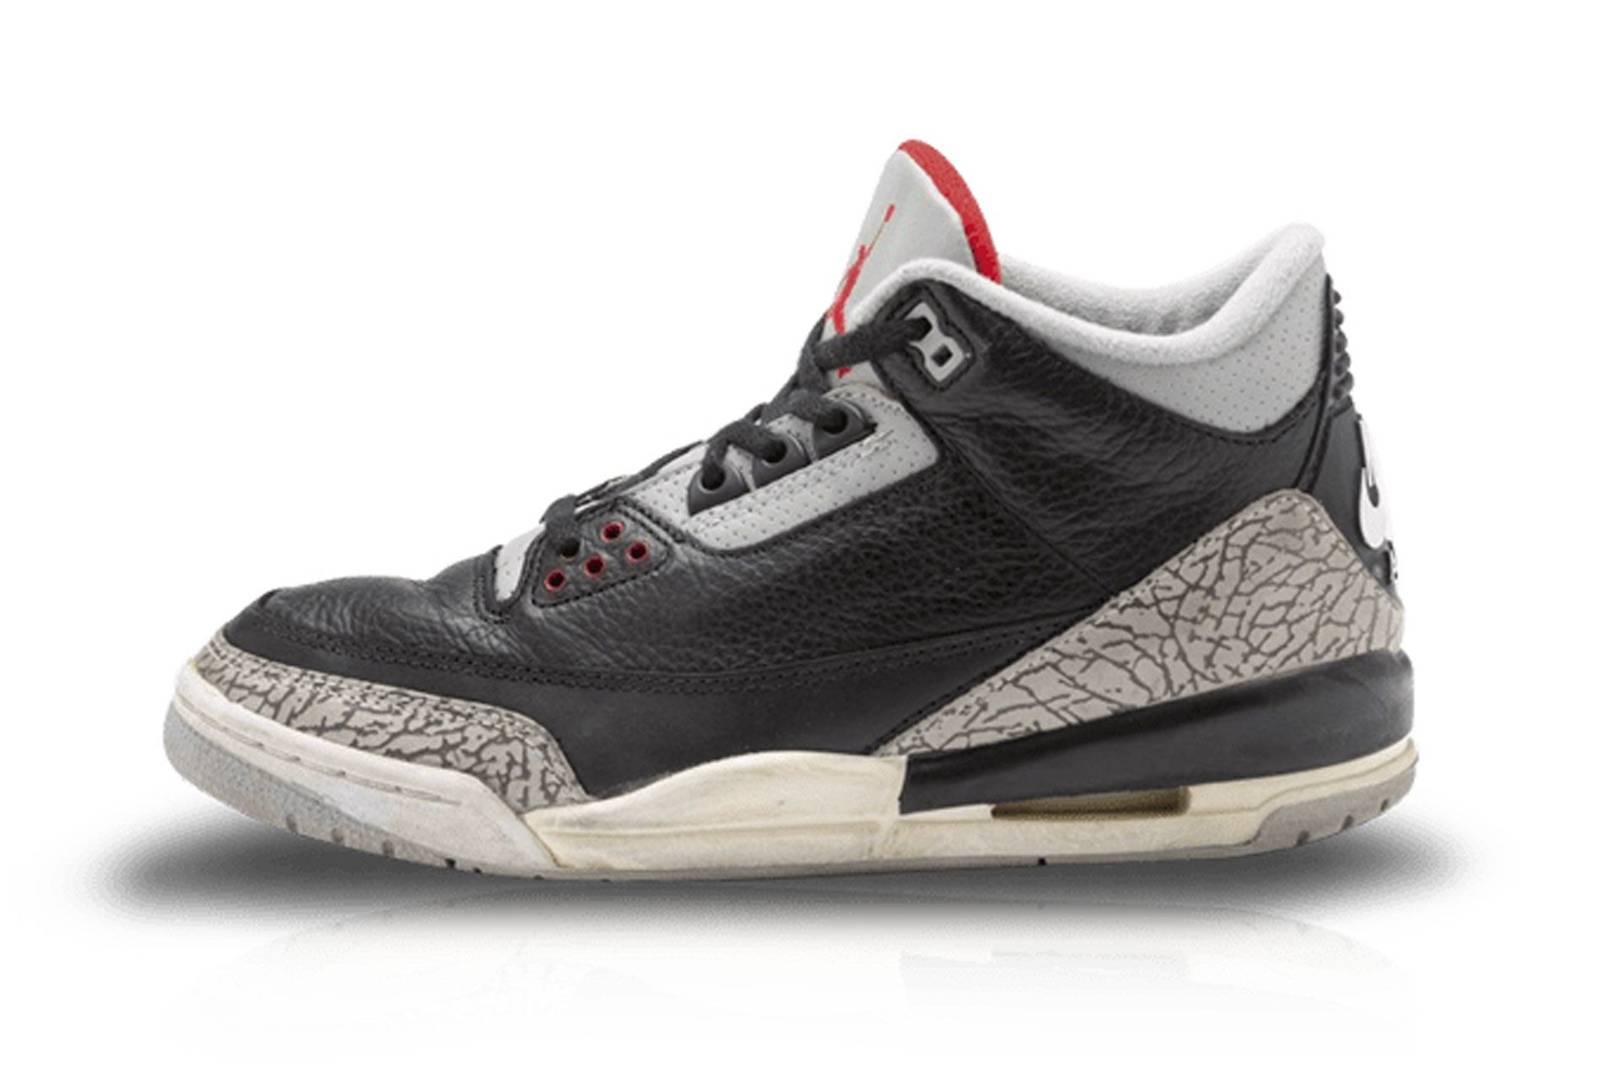 2b029013070 London exhibition  G.O.A.T Sneakers  lists the 25 greatest trainers of all  time